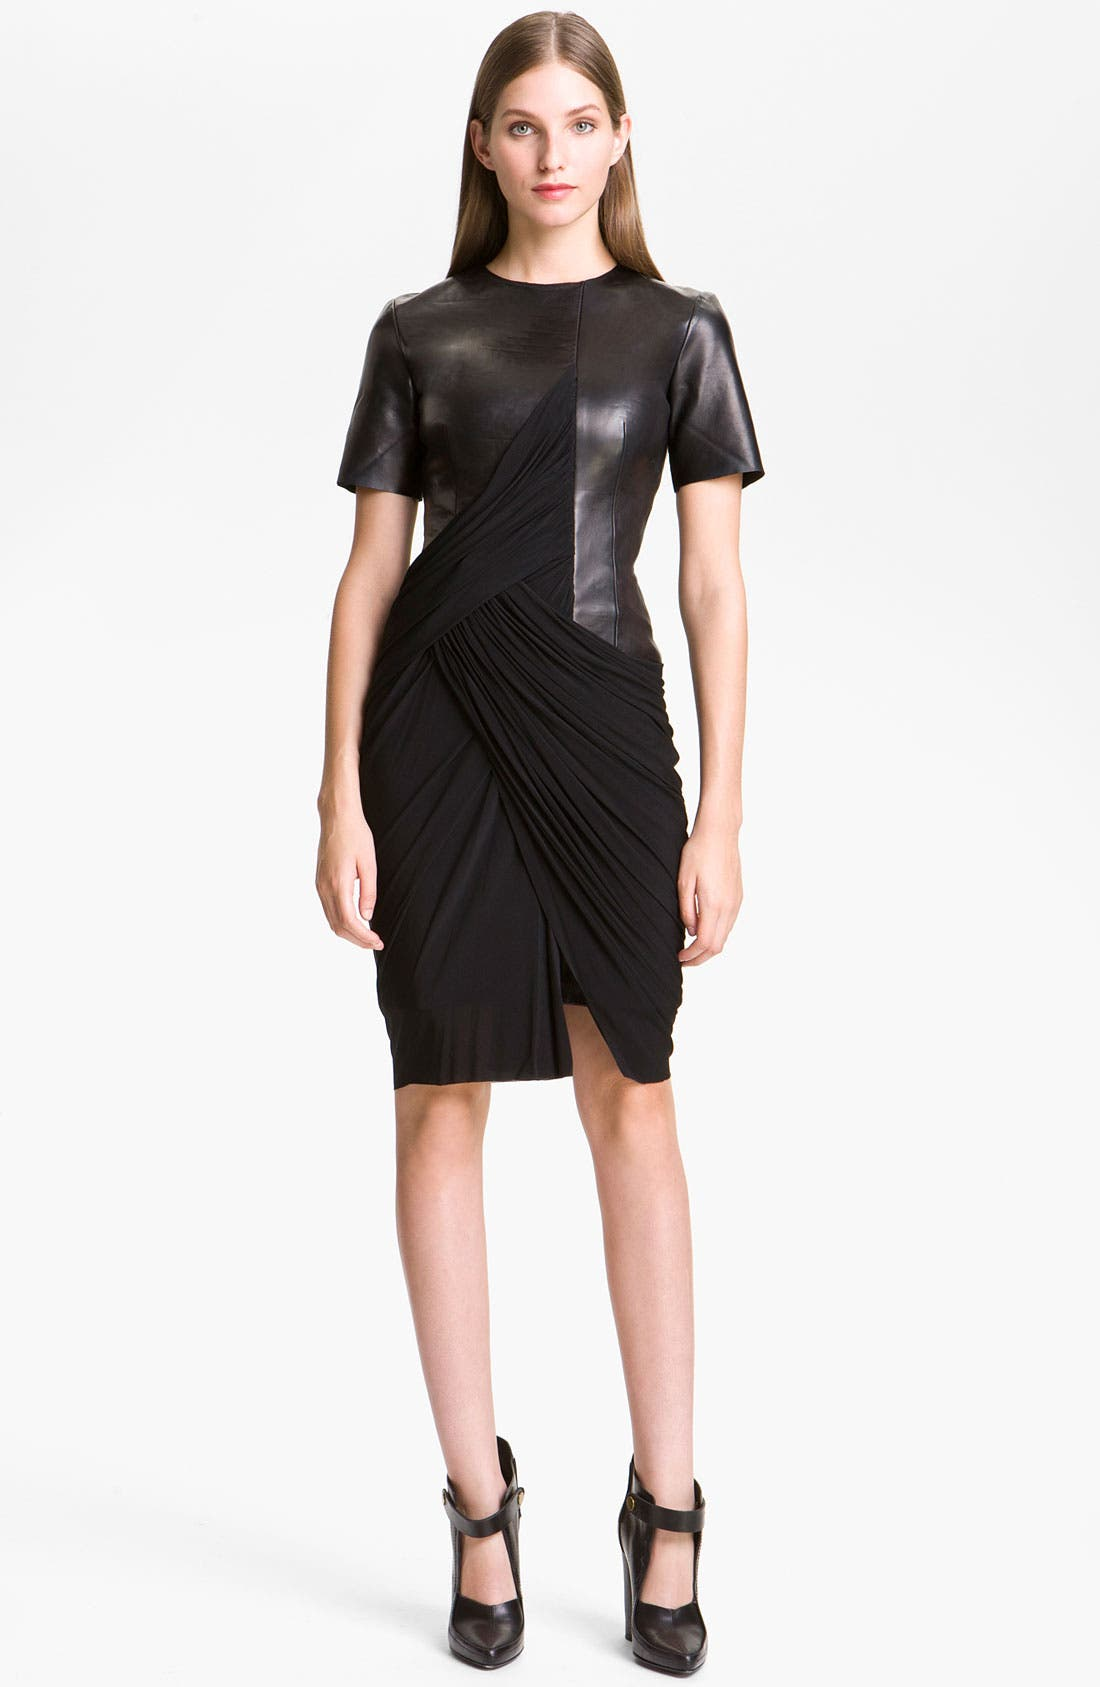 Alternate Image 1 Selected - Alexander Wang Draped Knit & Leather Dress